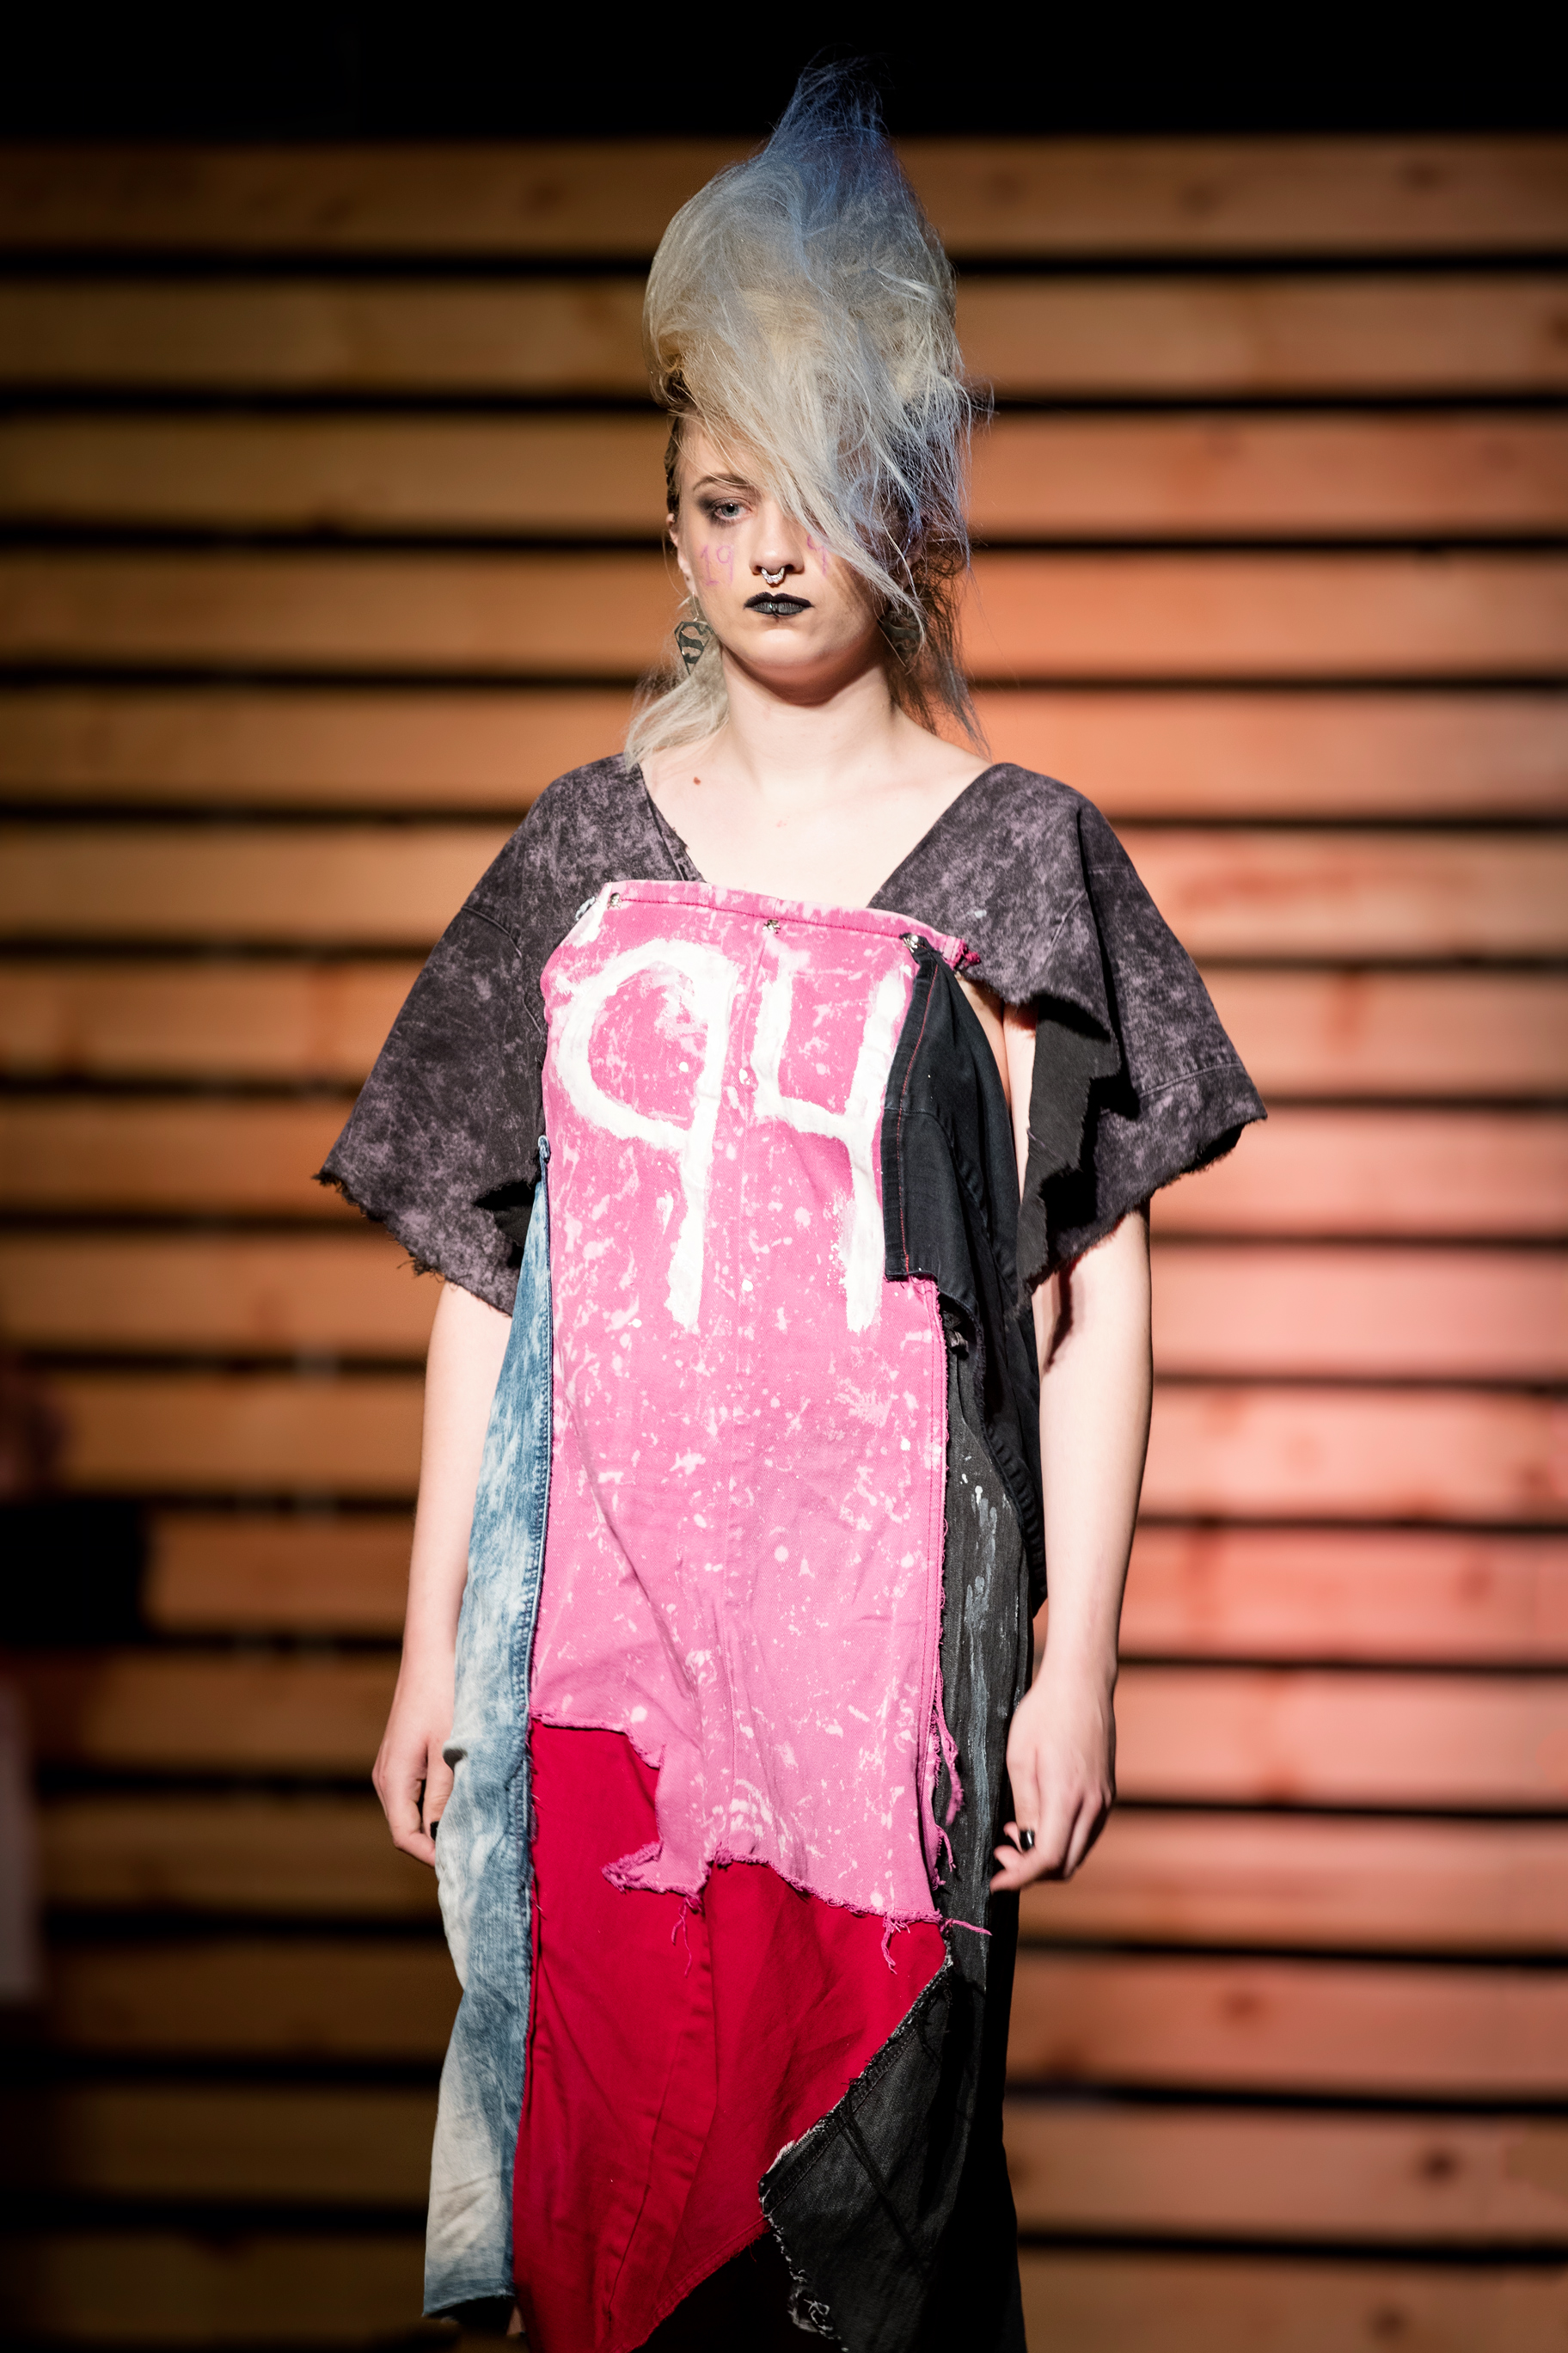 Mission Wear Upcycled Patchwork Fashion Show - 078.jpg